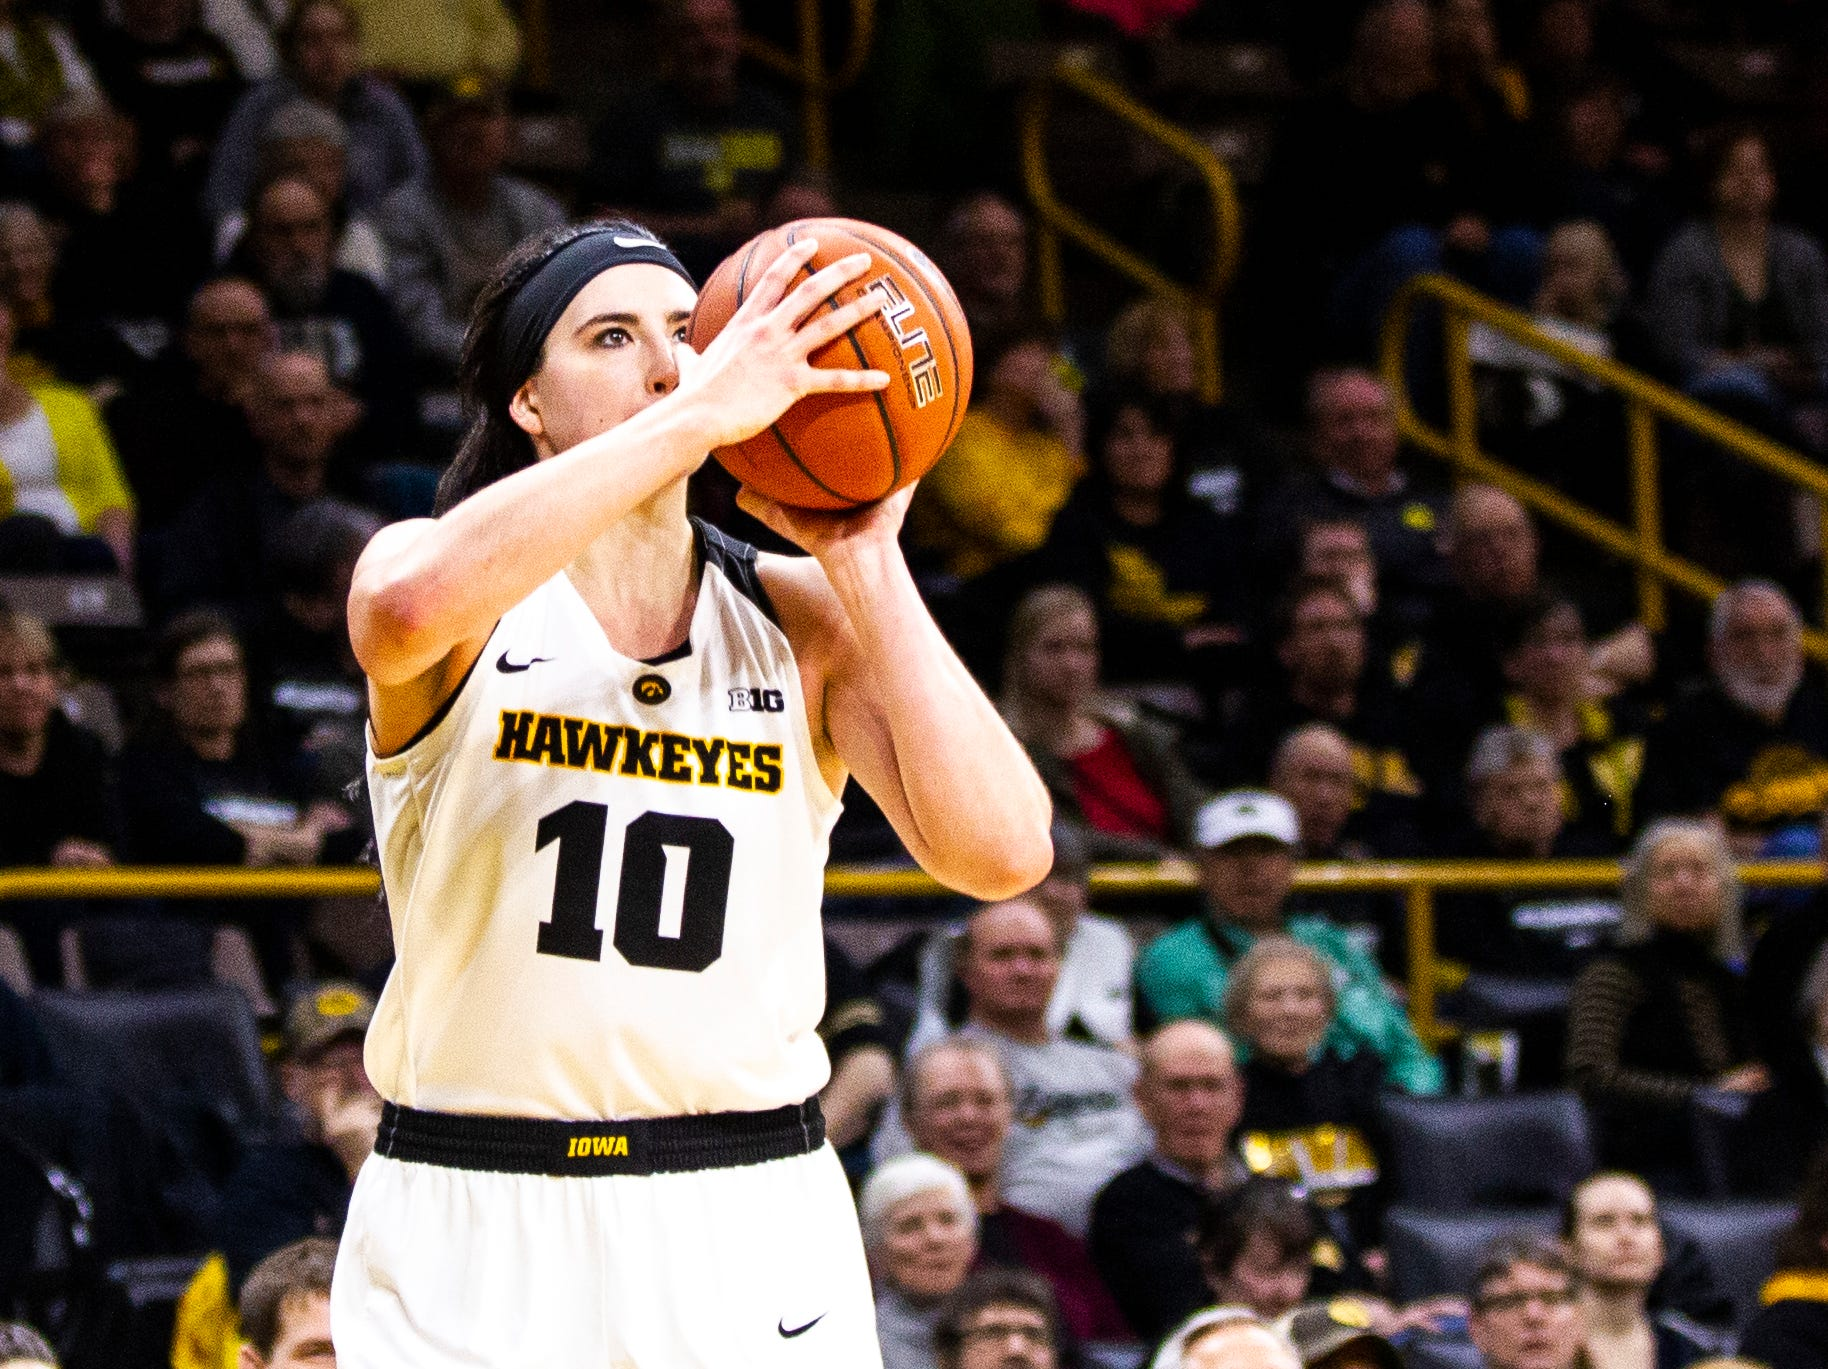 Iowa forward Megan Gustafson (10) shoots a basket during a NCAA Big Ten Conference women's basketball game on Thursday, Jan. 17, 2019, at Carver-Hawkeye Arena in Iowa City, Iowa.